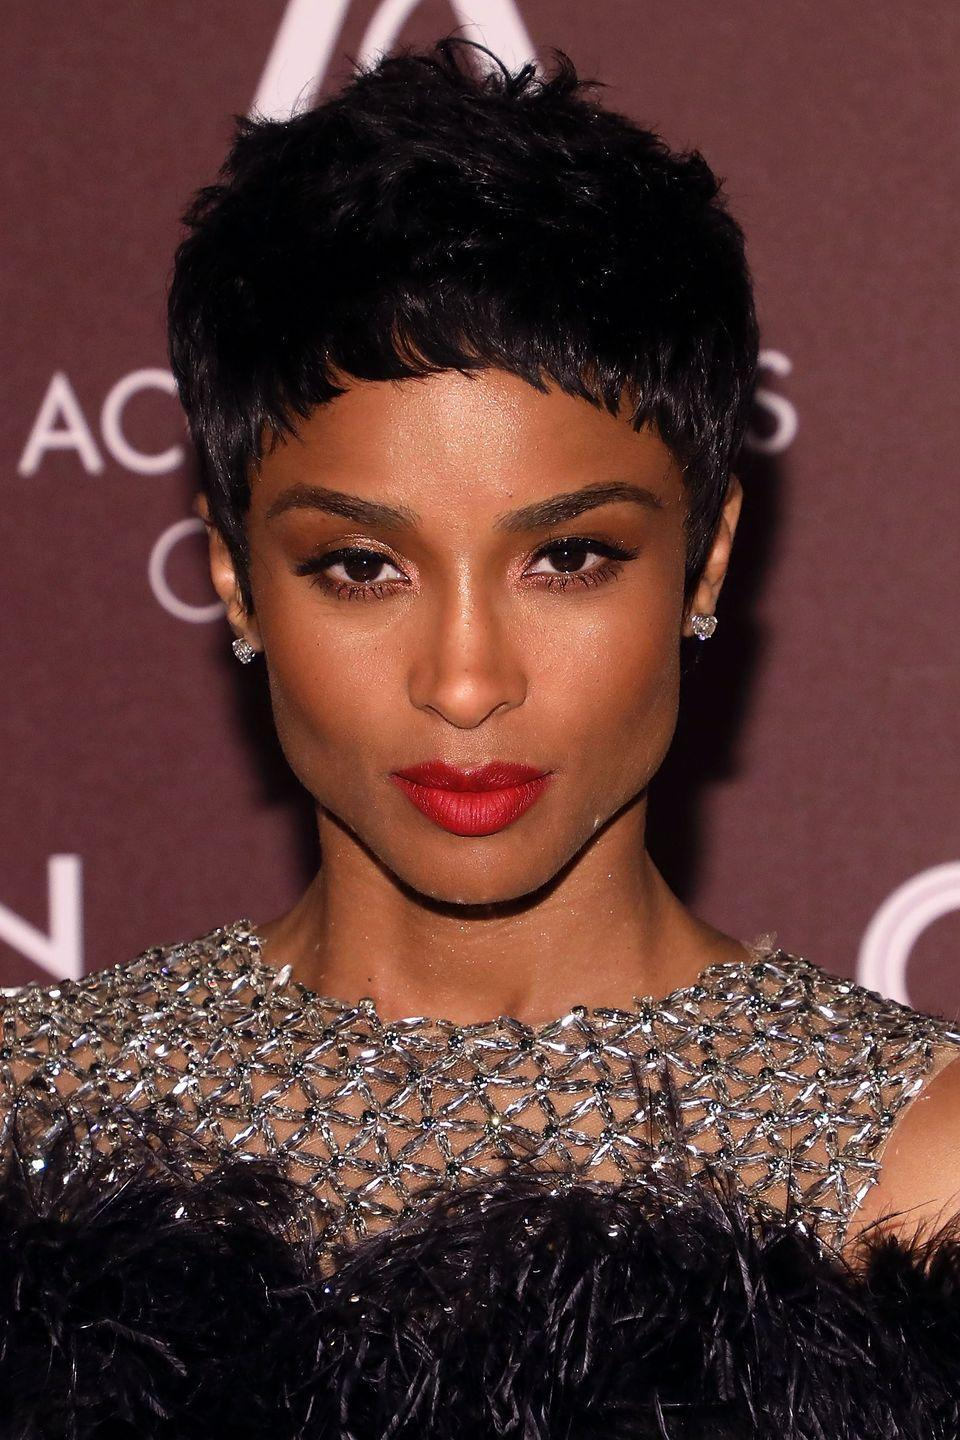 <p>Or, just go ahead and get the tiny bangs of your dreams while the rest of your hair is ultra short. The style is seen here on Ciara.</p>